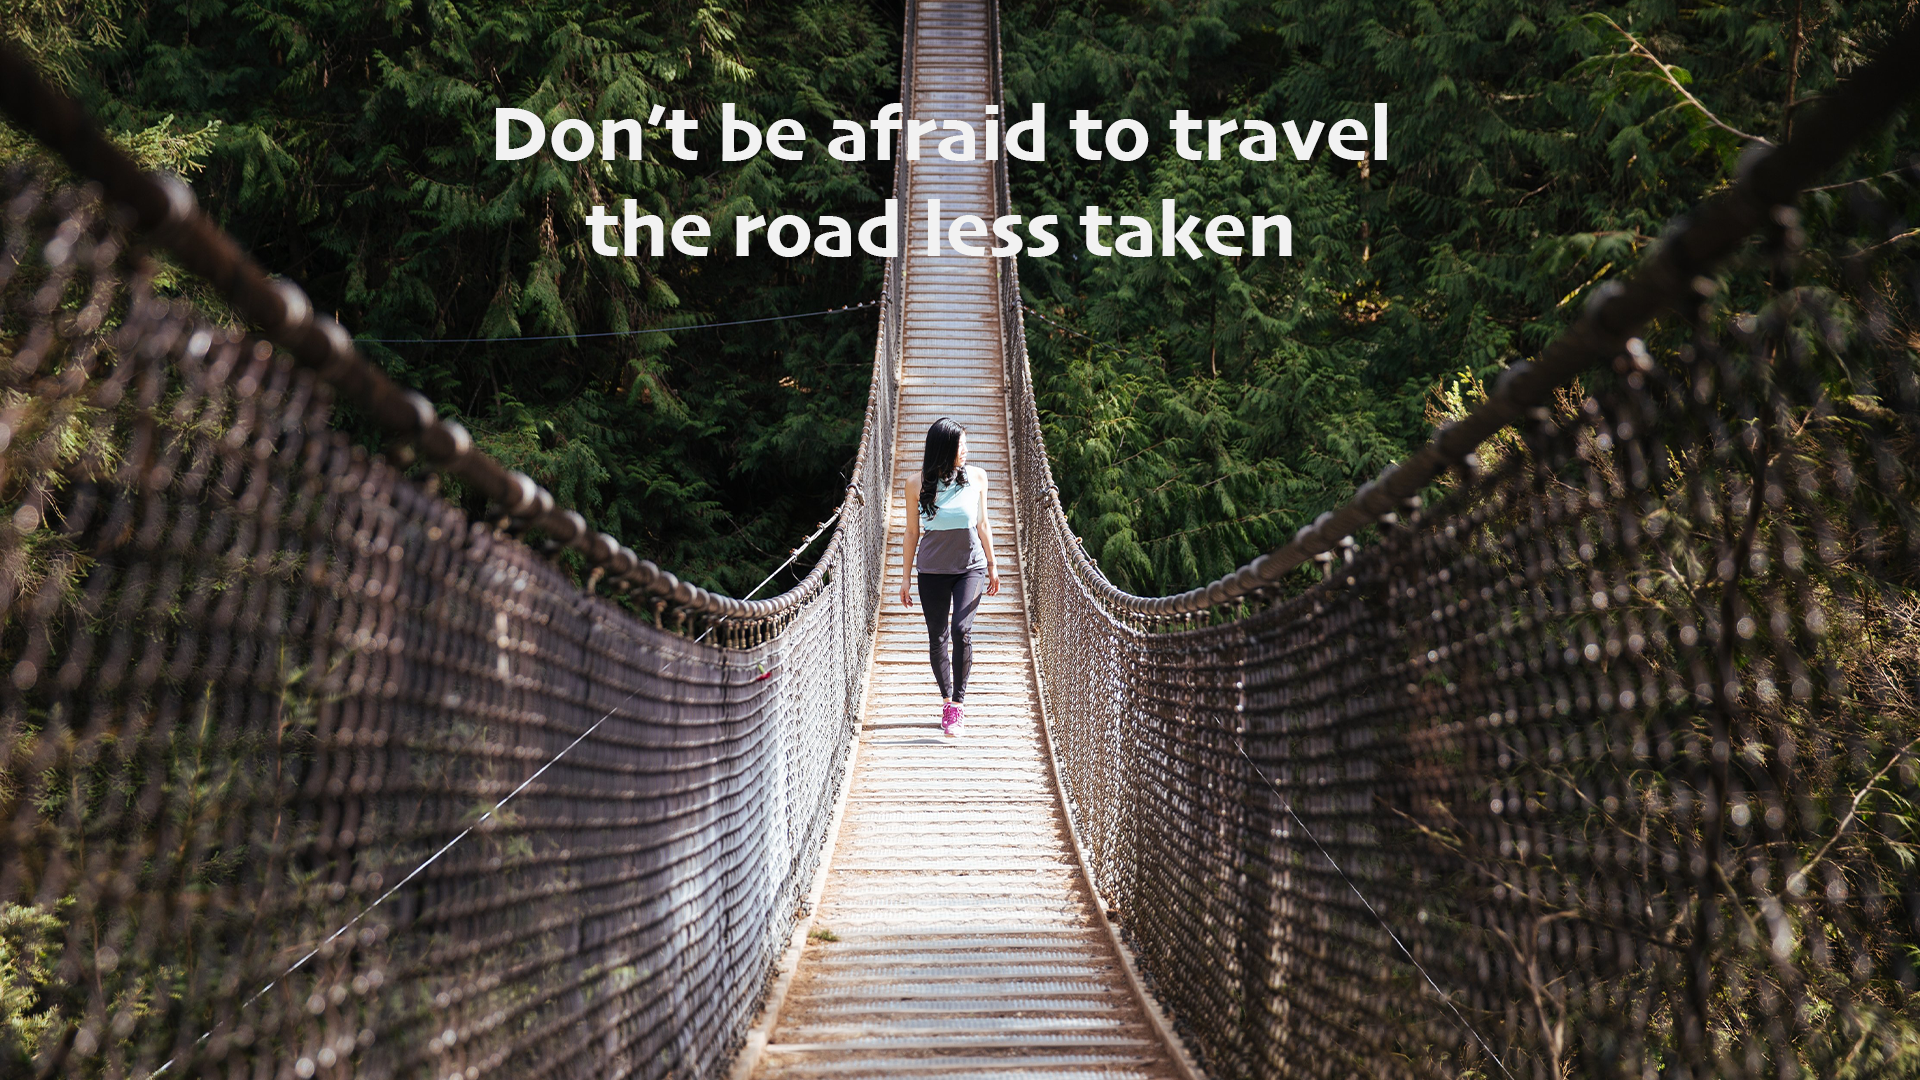 Don't Be Afraid To Travel The Road Less Taken